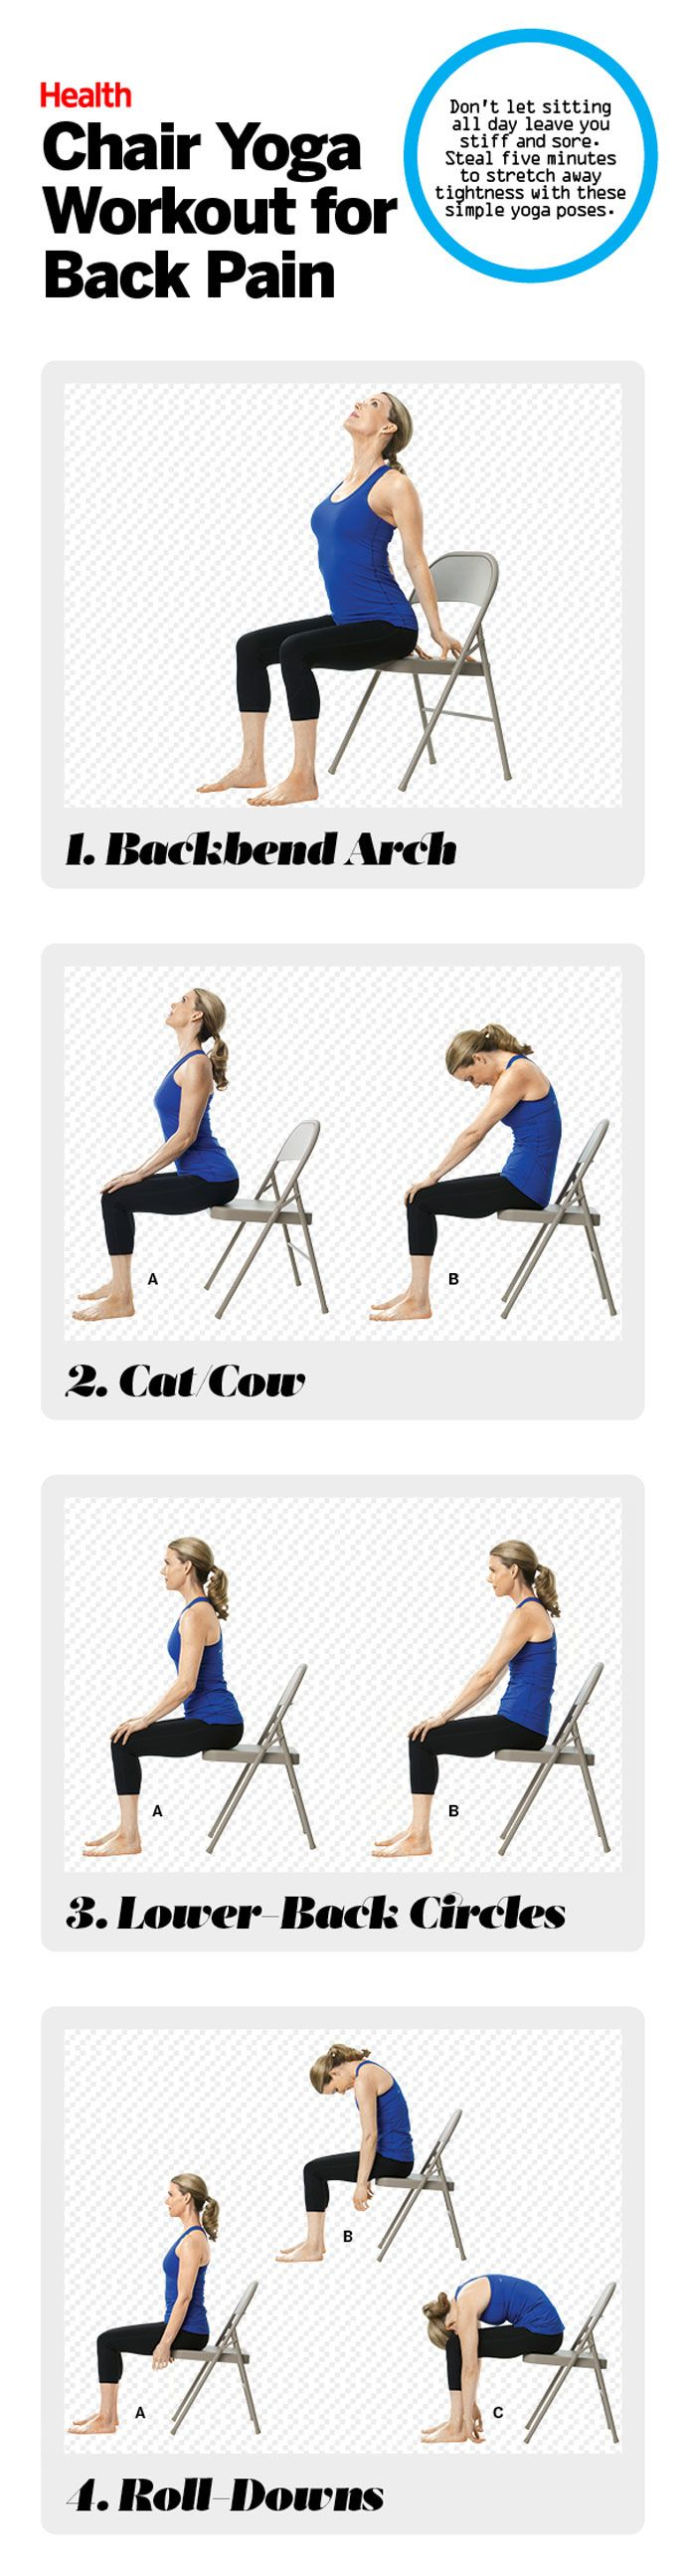 chair-yoga-back-pain-2